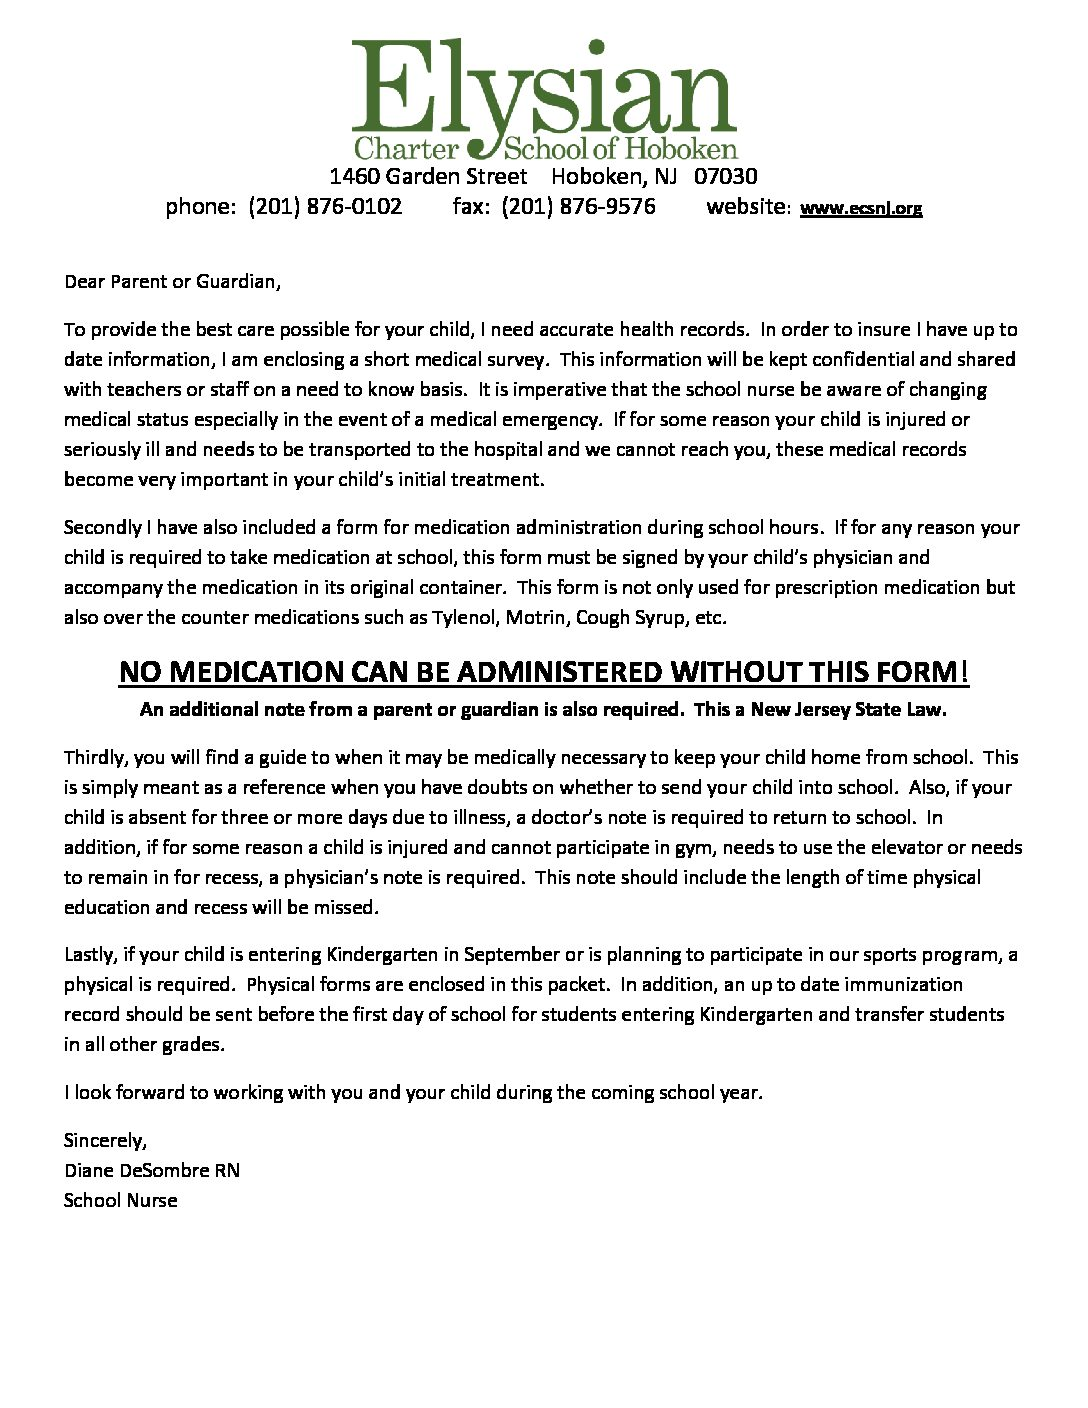 sports physical form new jersey  Medication Administration Letter & Form – Elysian Charter School